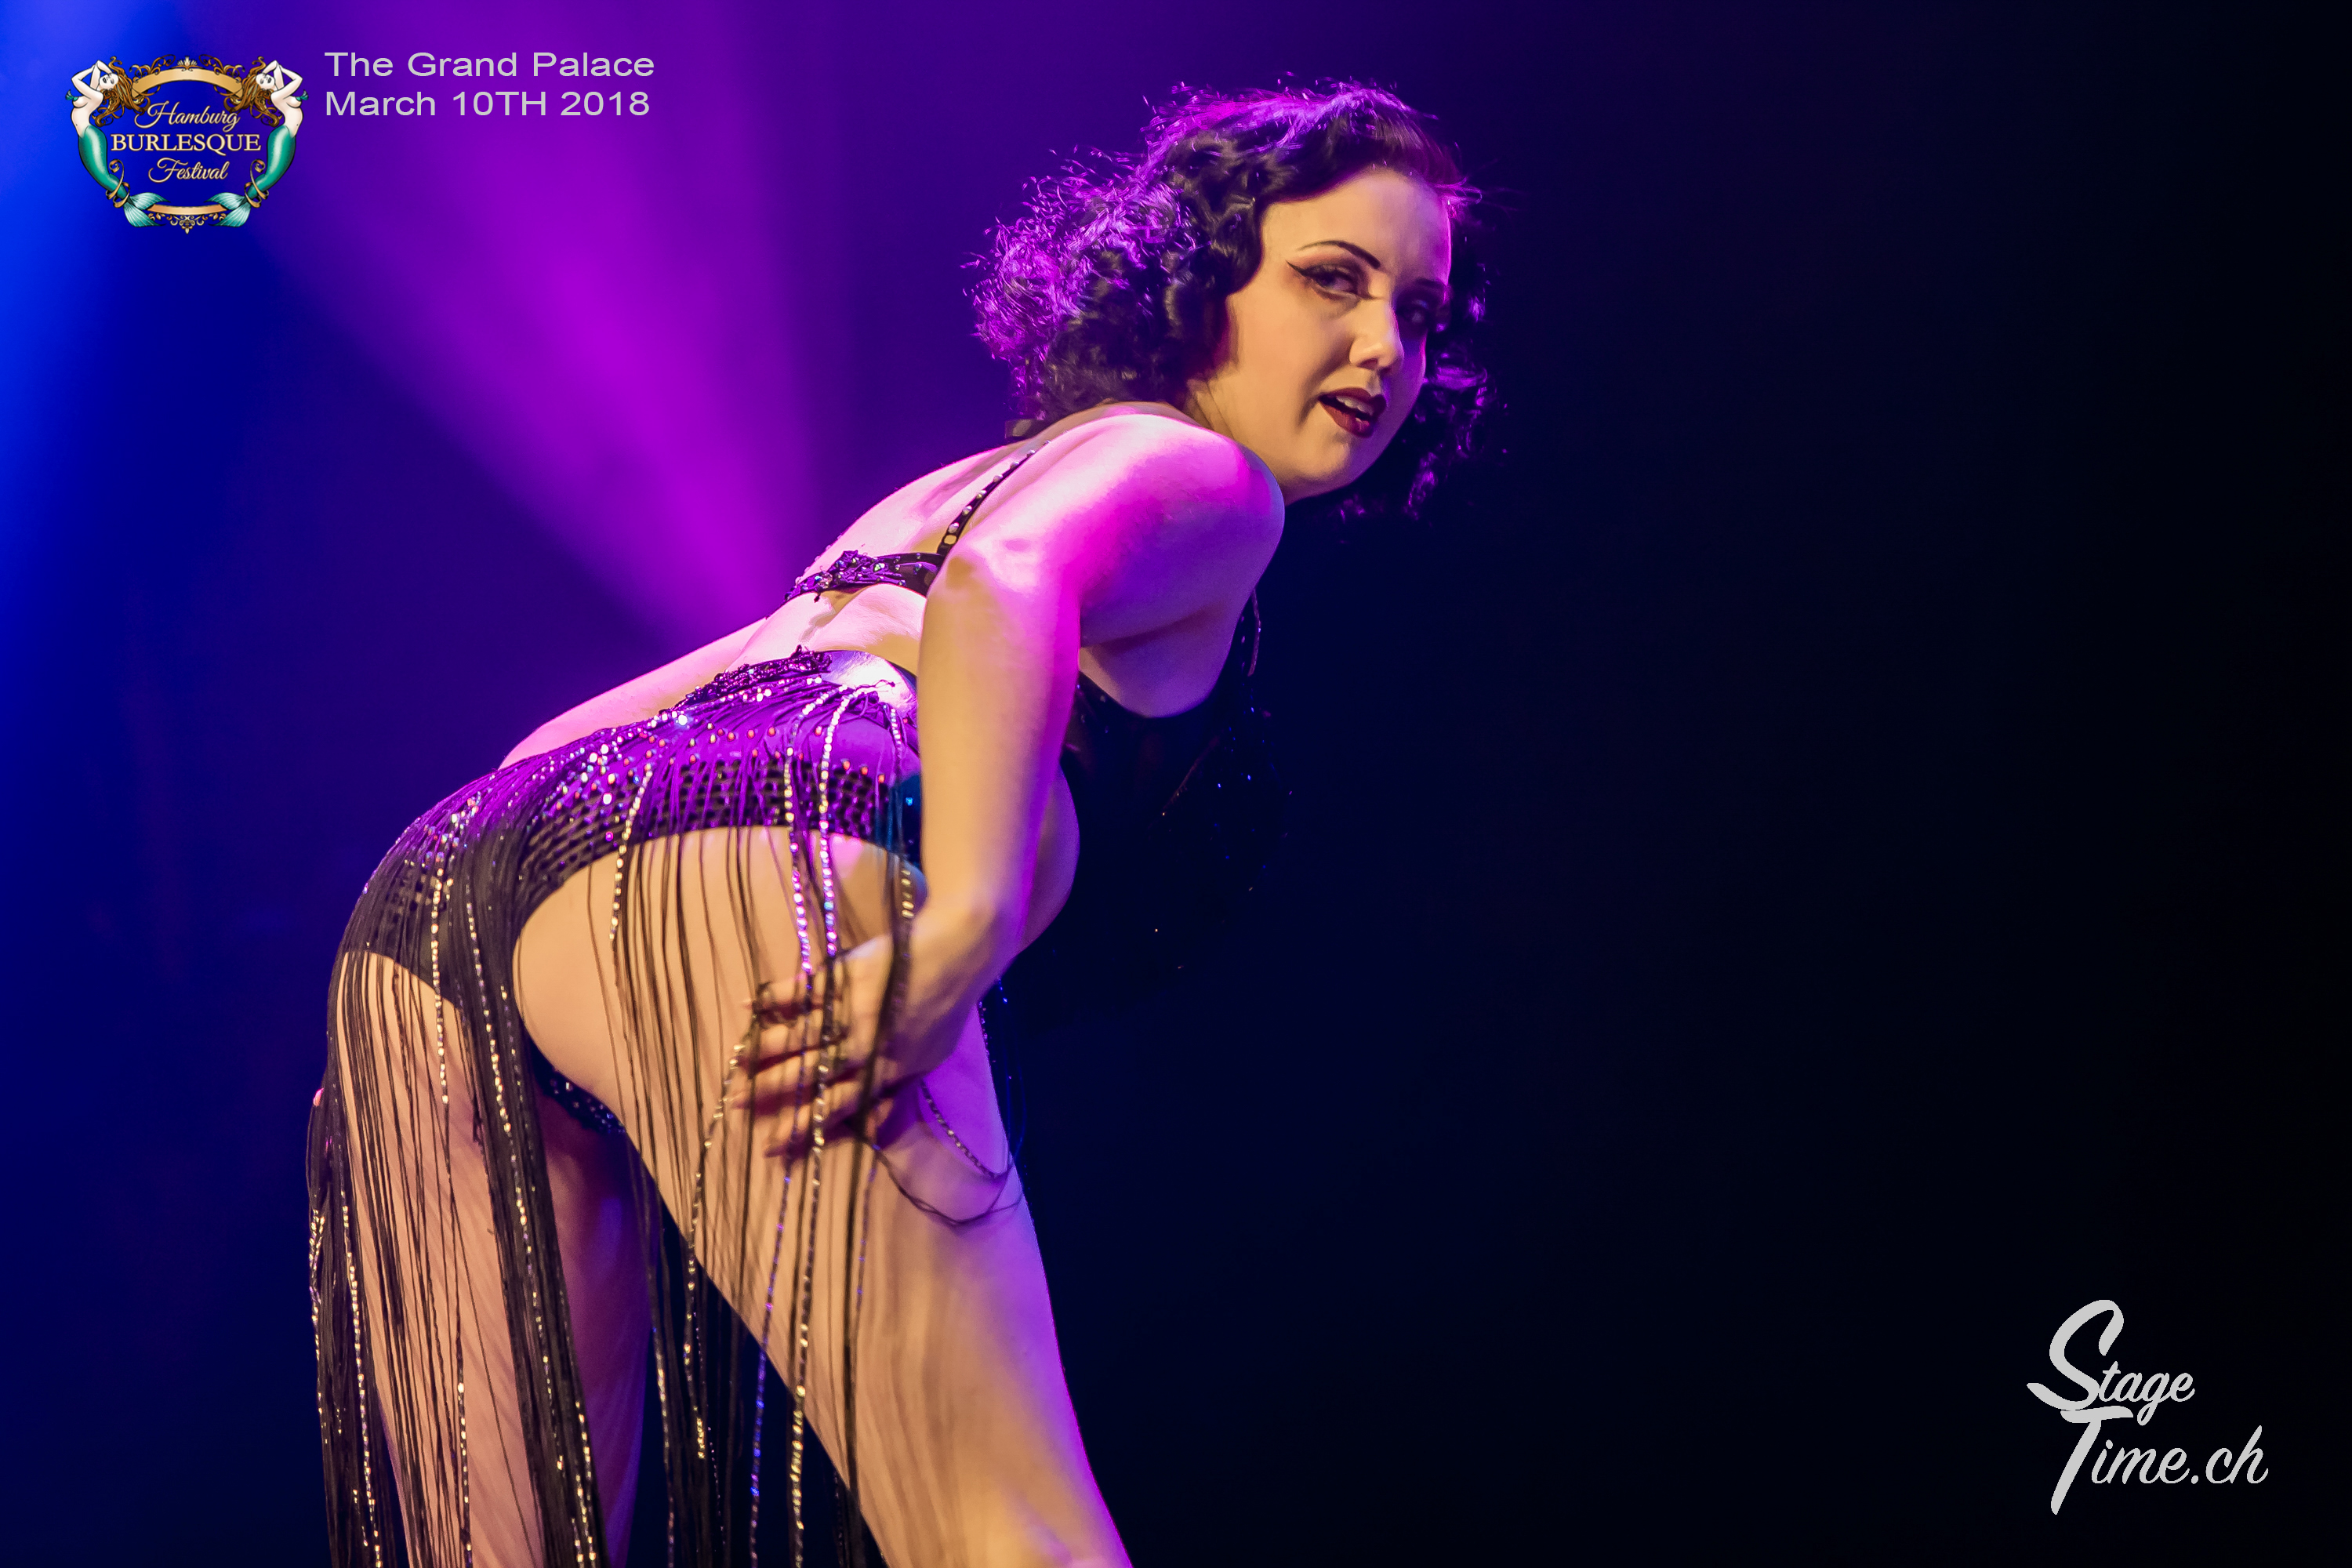 Hamburg_Burlesque_Festival_The_Grand_Palace__📷_Christoph_Gurtner_I_stagetime.ch-123